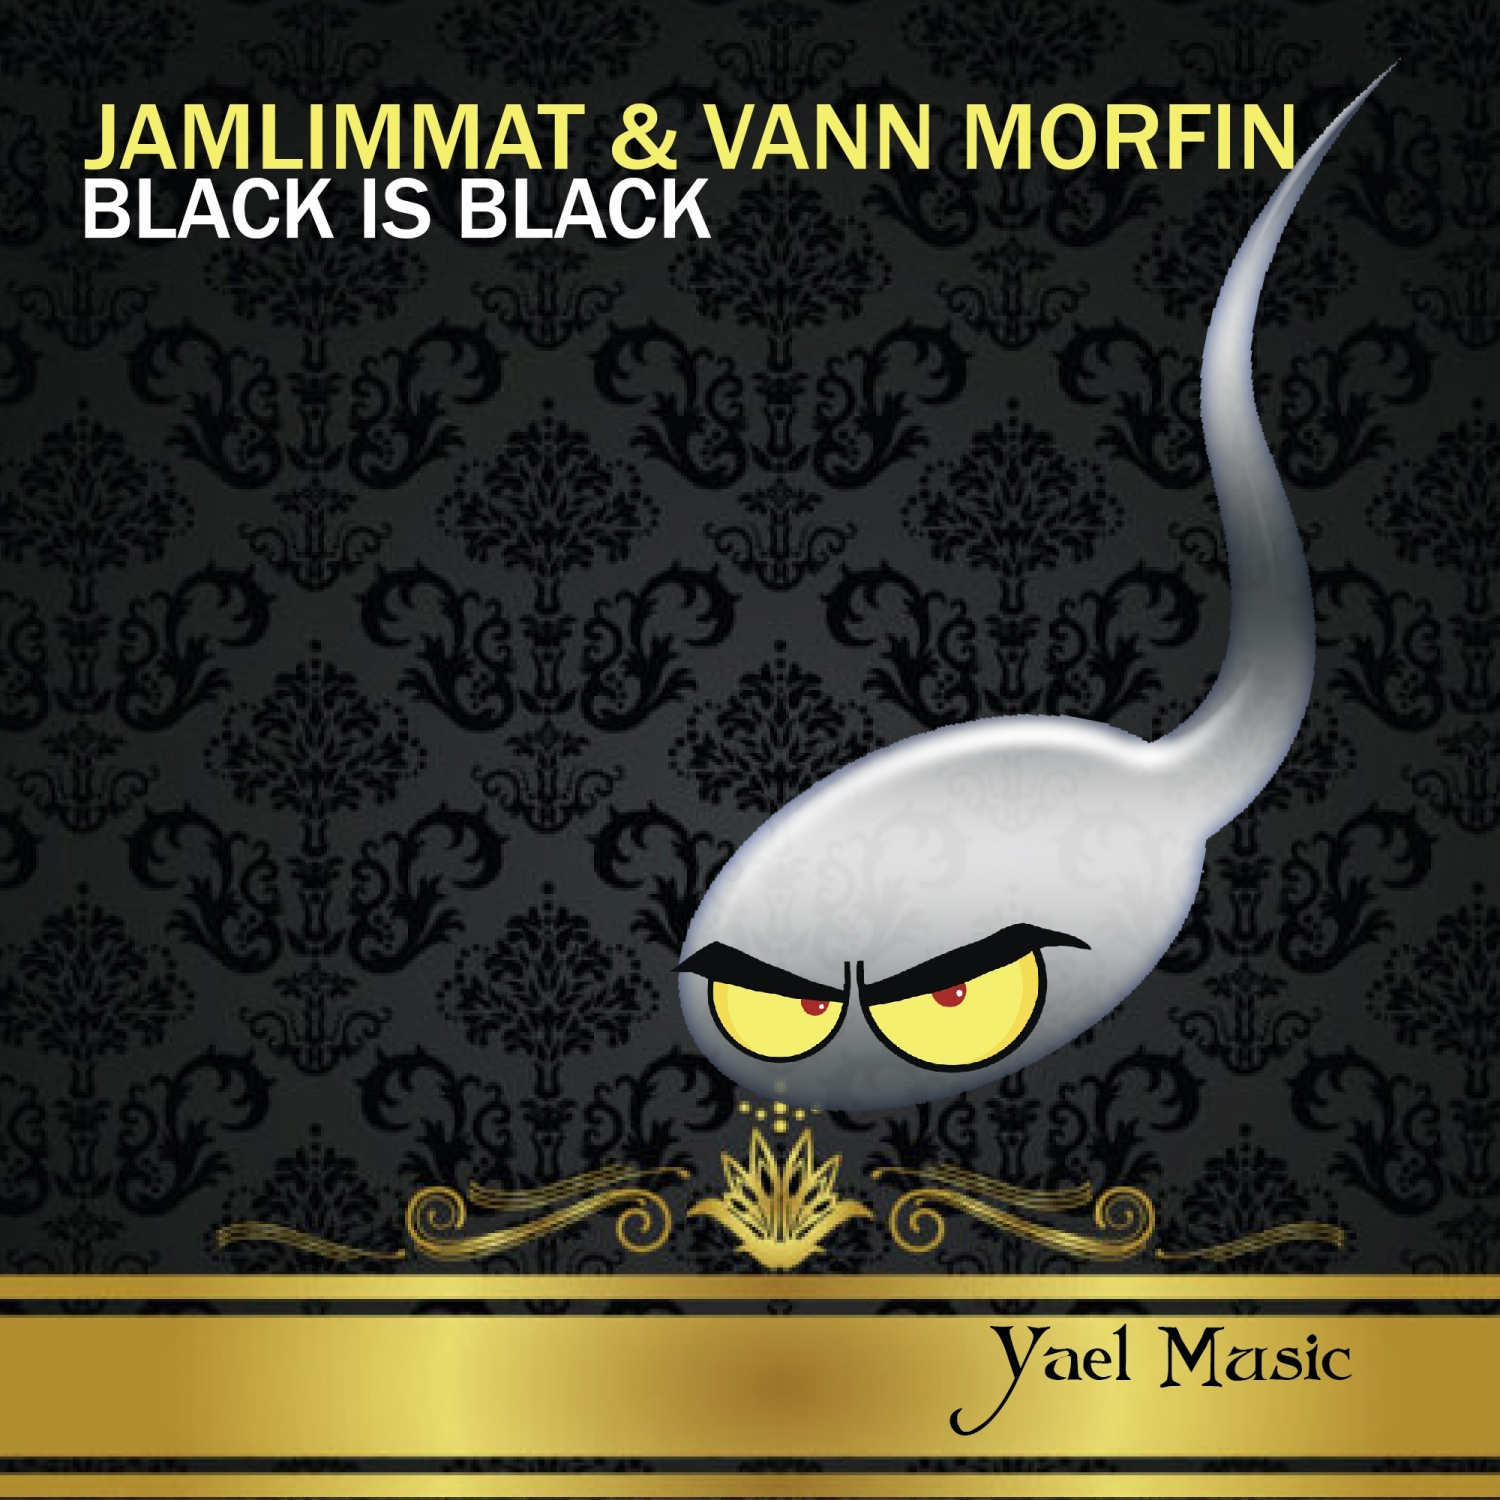 JamLimmat & Vann Morfin - Black is Black  (Original Mix)